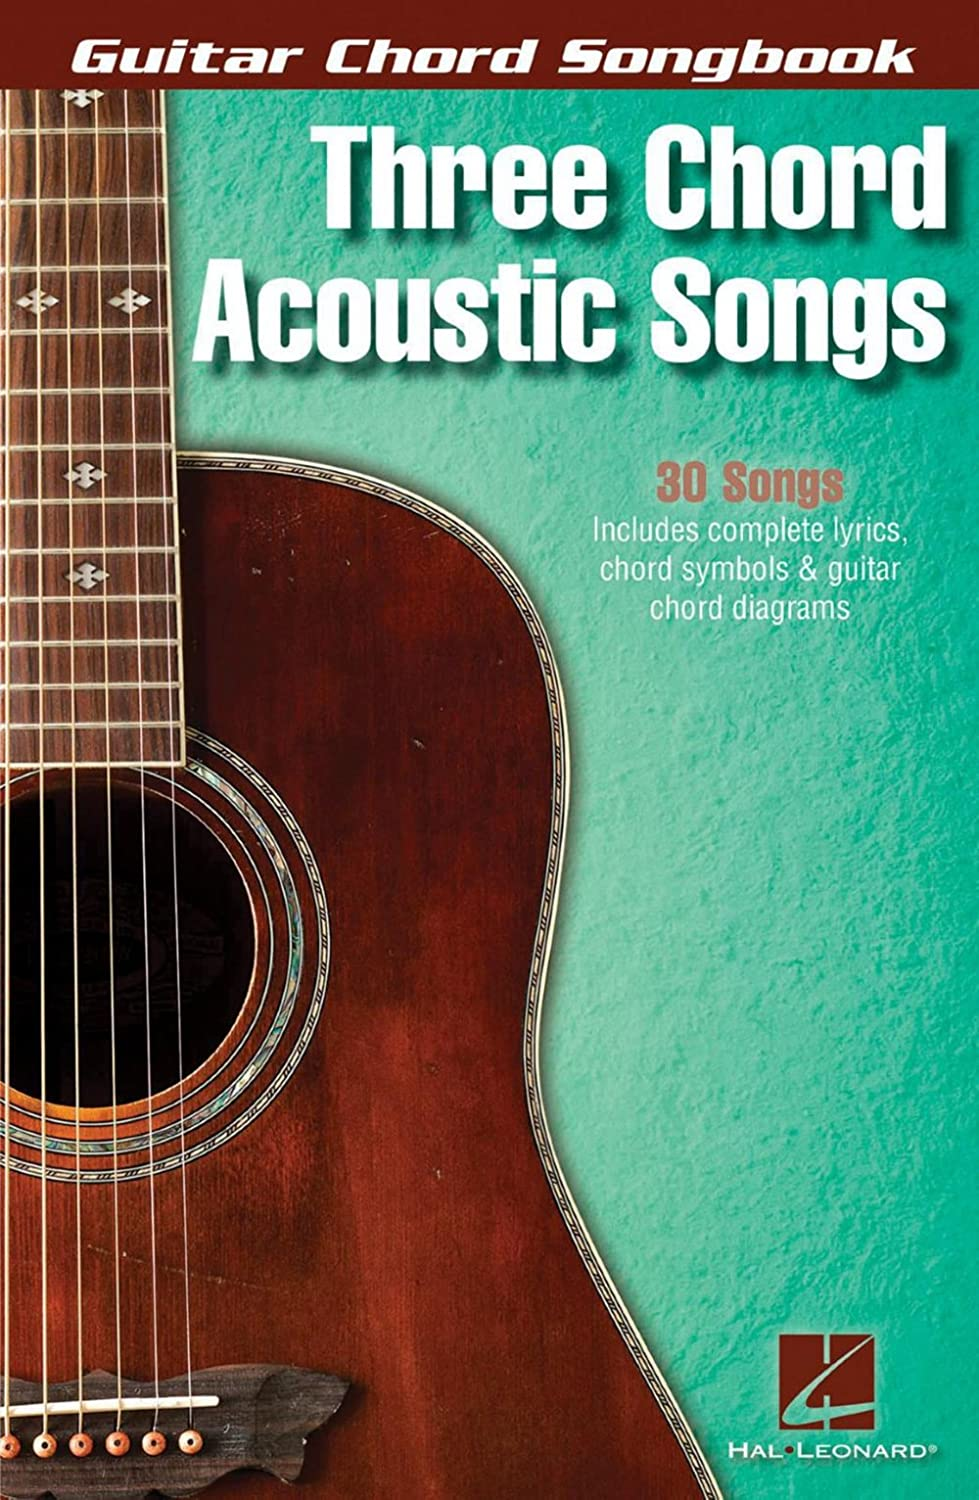 Guitar Chord Songbook Three Chord Acoustic Songs Sheet Music For